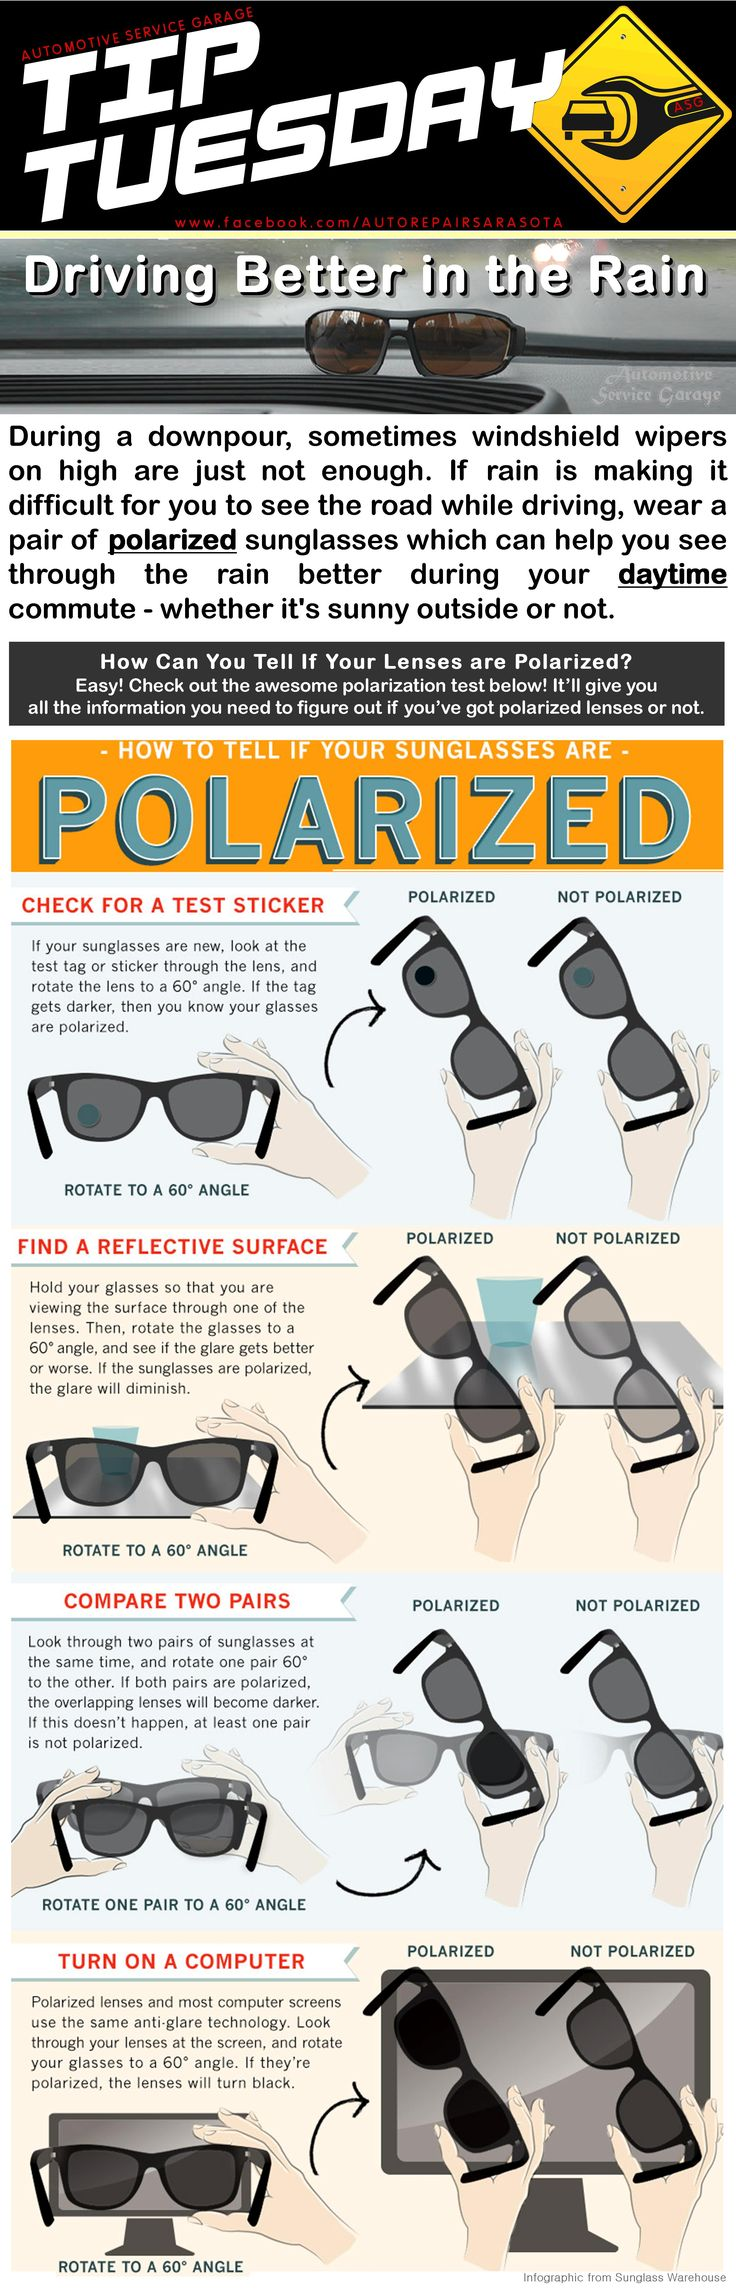 Car Care Tip: If rain is making it difficult for you to see the road while driving, wear a pair of polarized sunglasses which can help you see through the rain better during your daytime commute - whether it's sunny outside or not. Polarized Sunglasses.